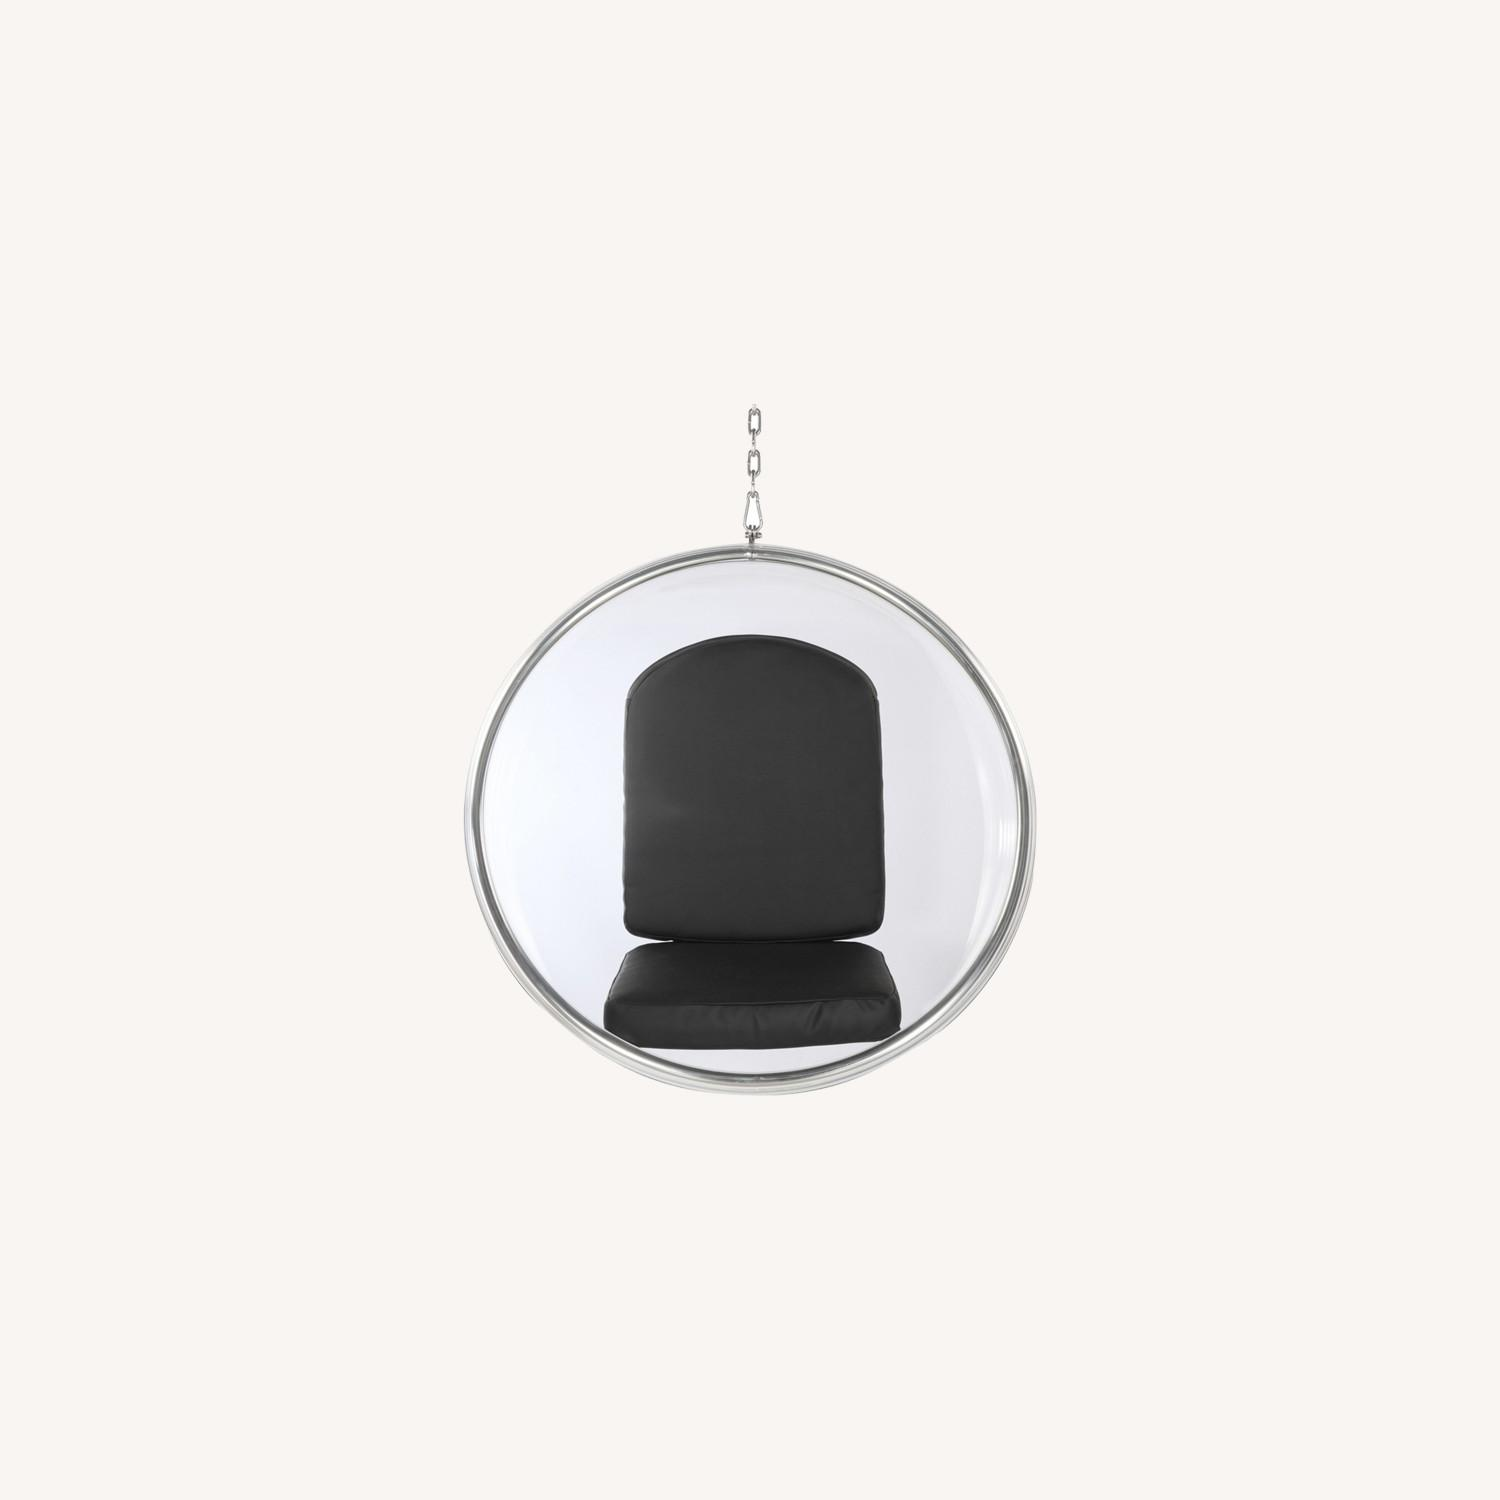 Hanging Chair In Clear Acrylic & Black PU Leather - image-7